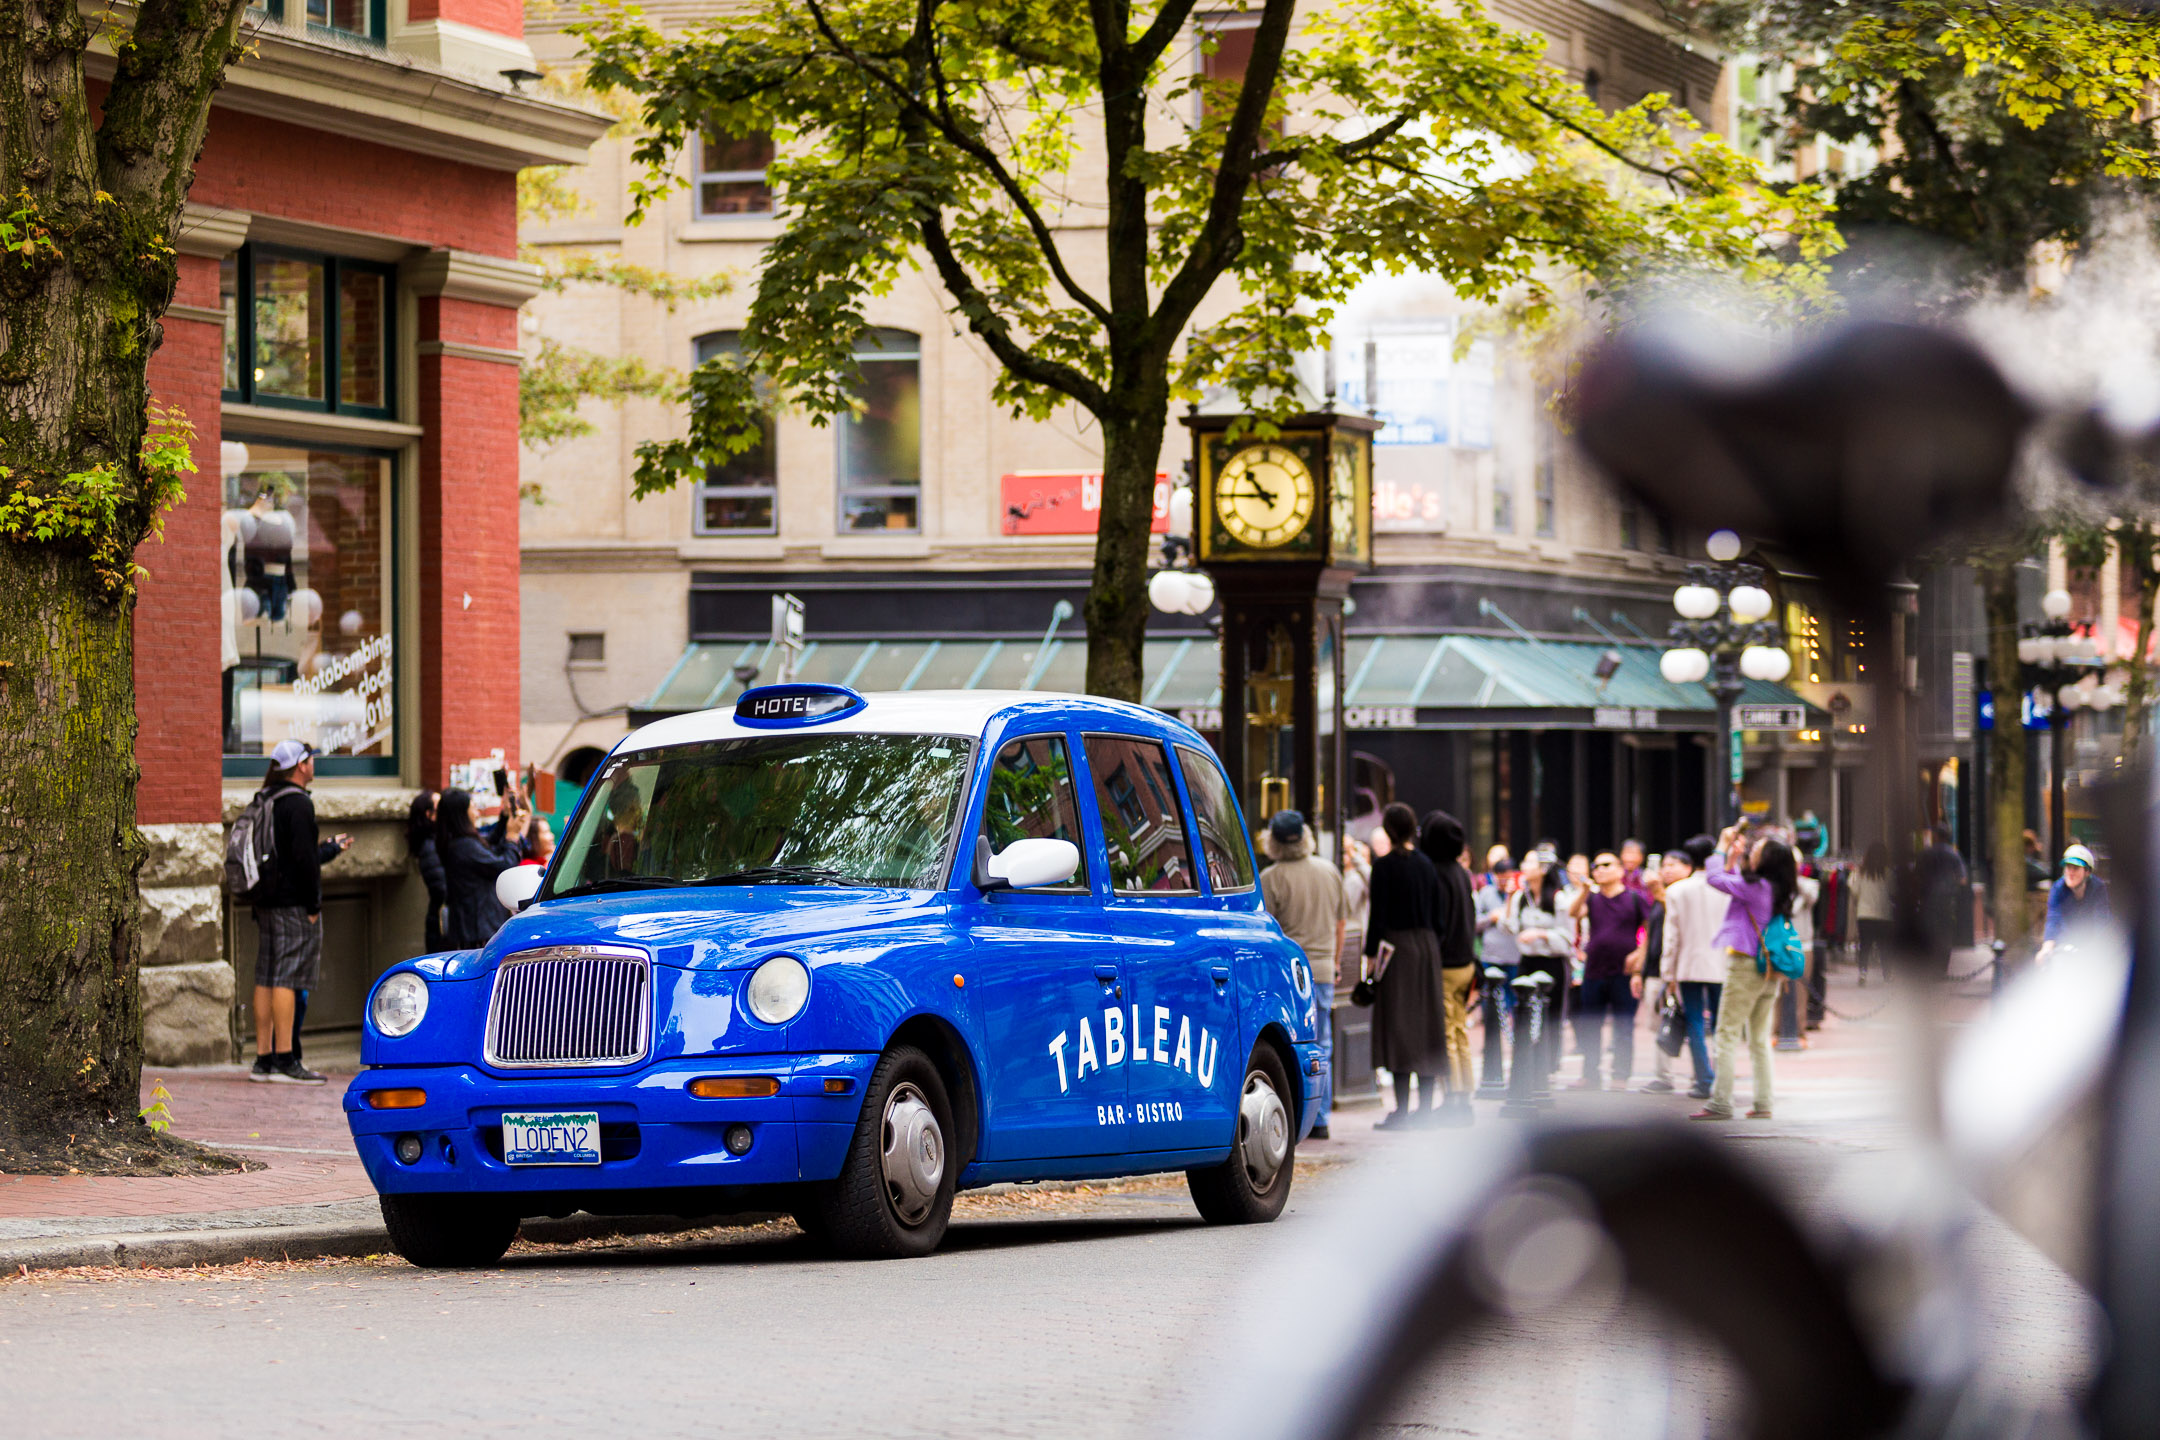 Tableau Car in Gastown